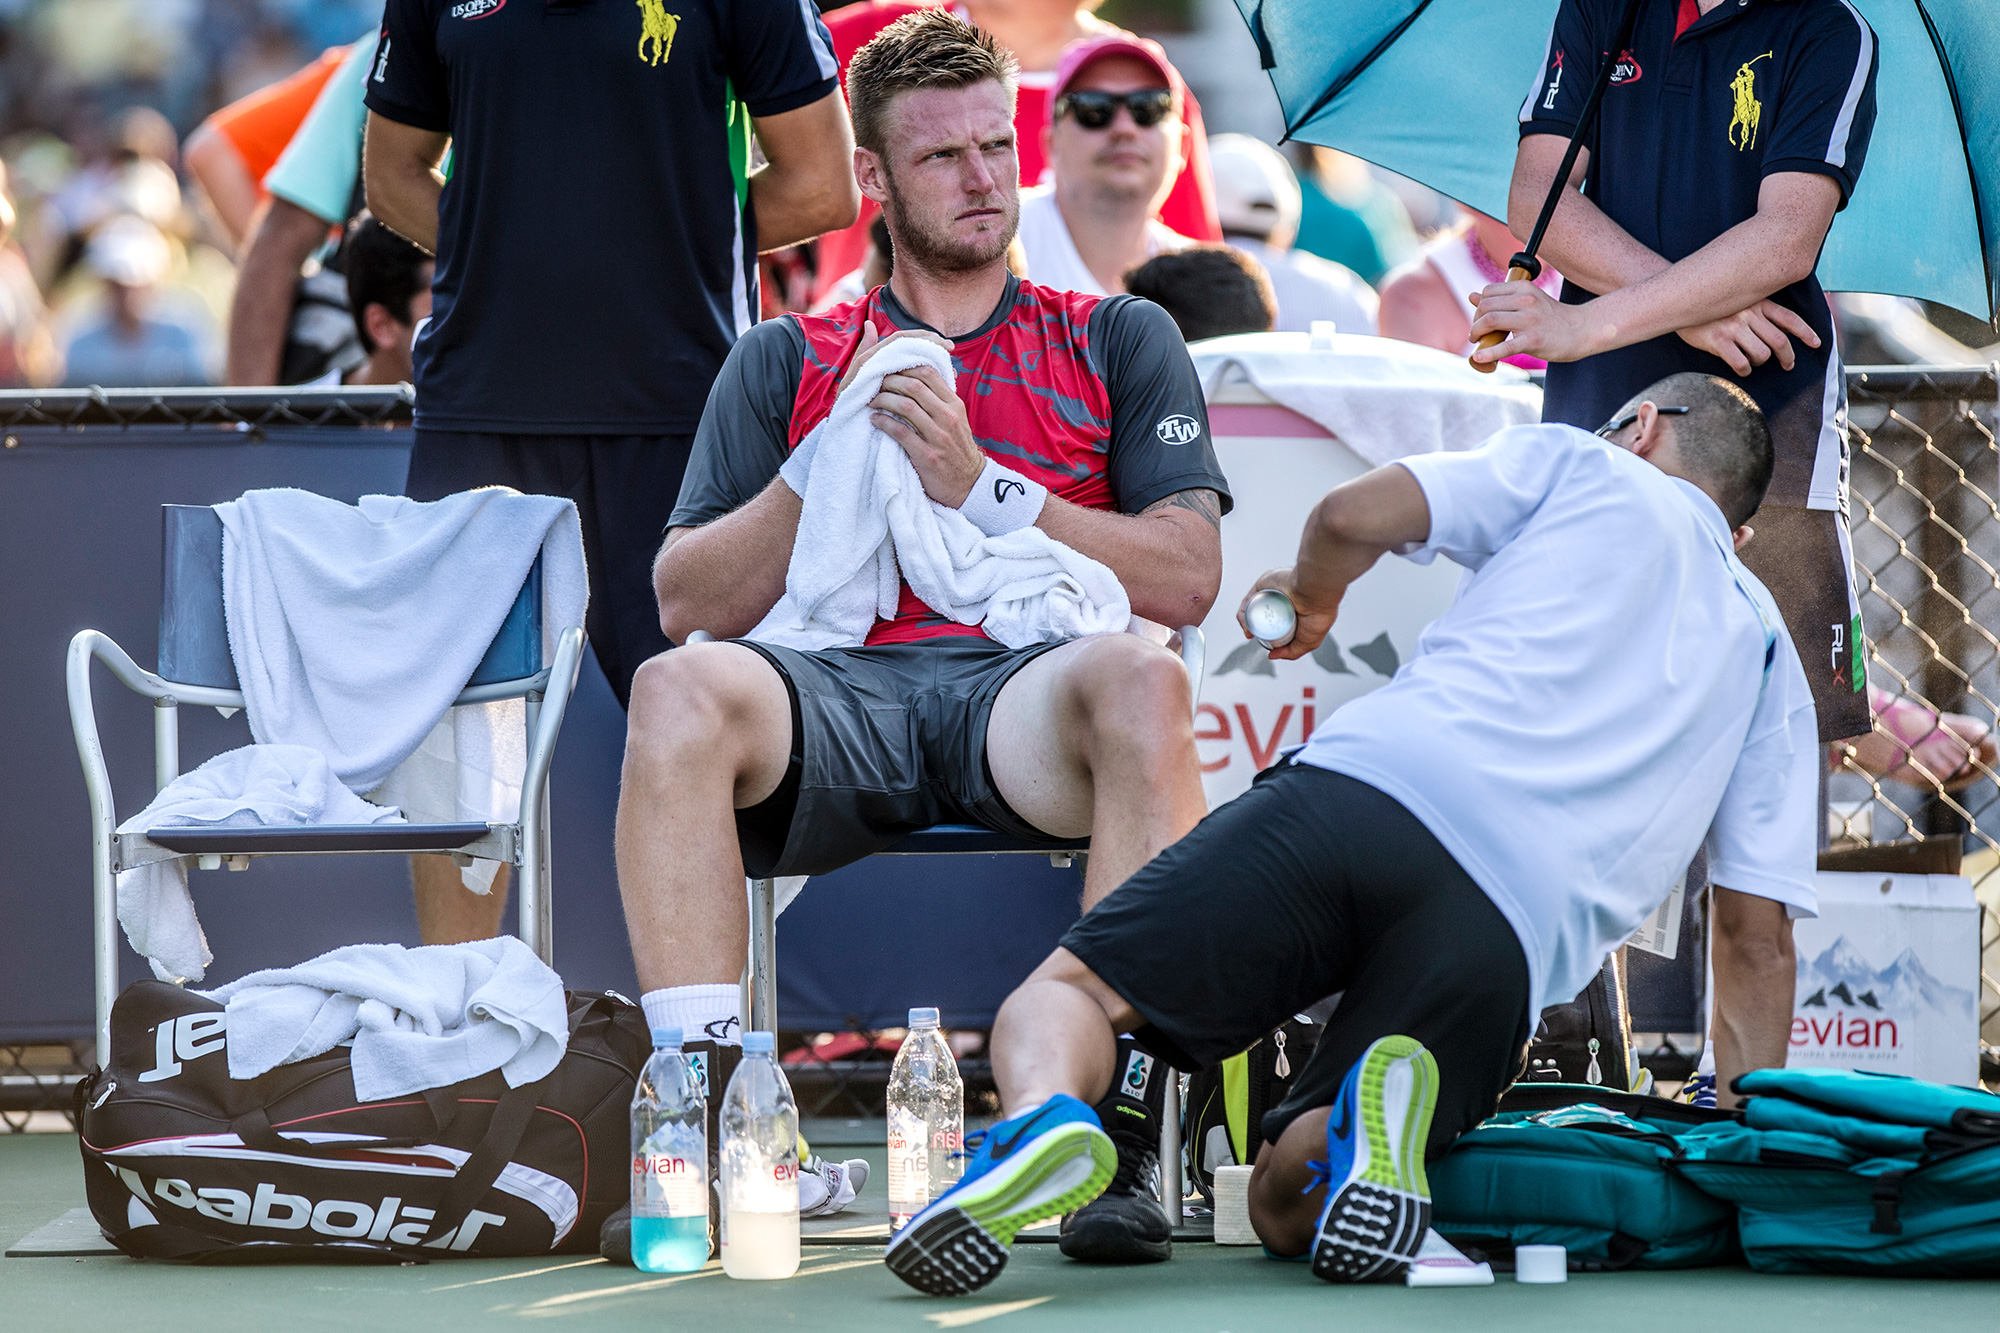 After taking a two-set lead behind his booming serve, Groth was sidelined with an apparent knee injury. Since there is no designated trainer on the court, he had to wait for one to be located elsewhere on the grounds before getting evaluated.